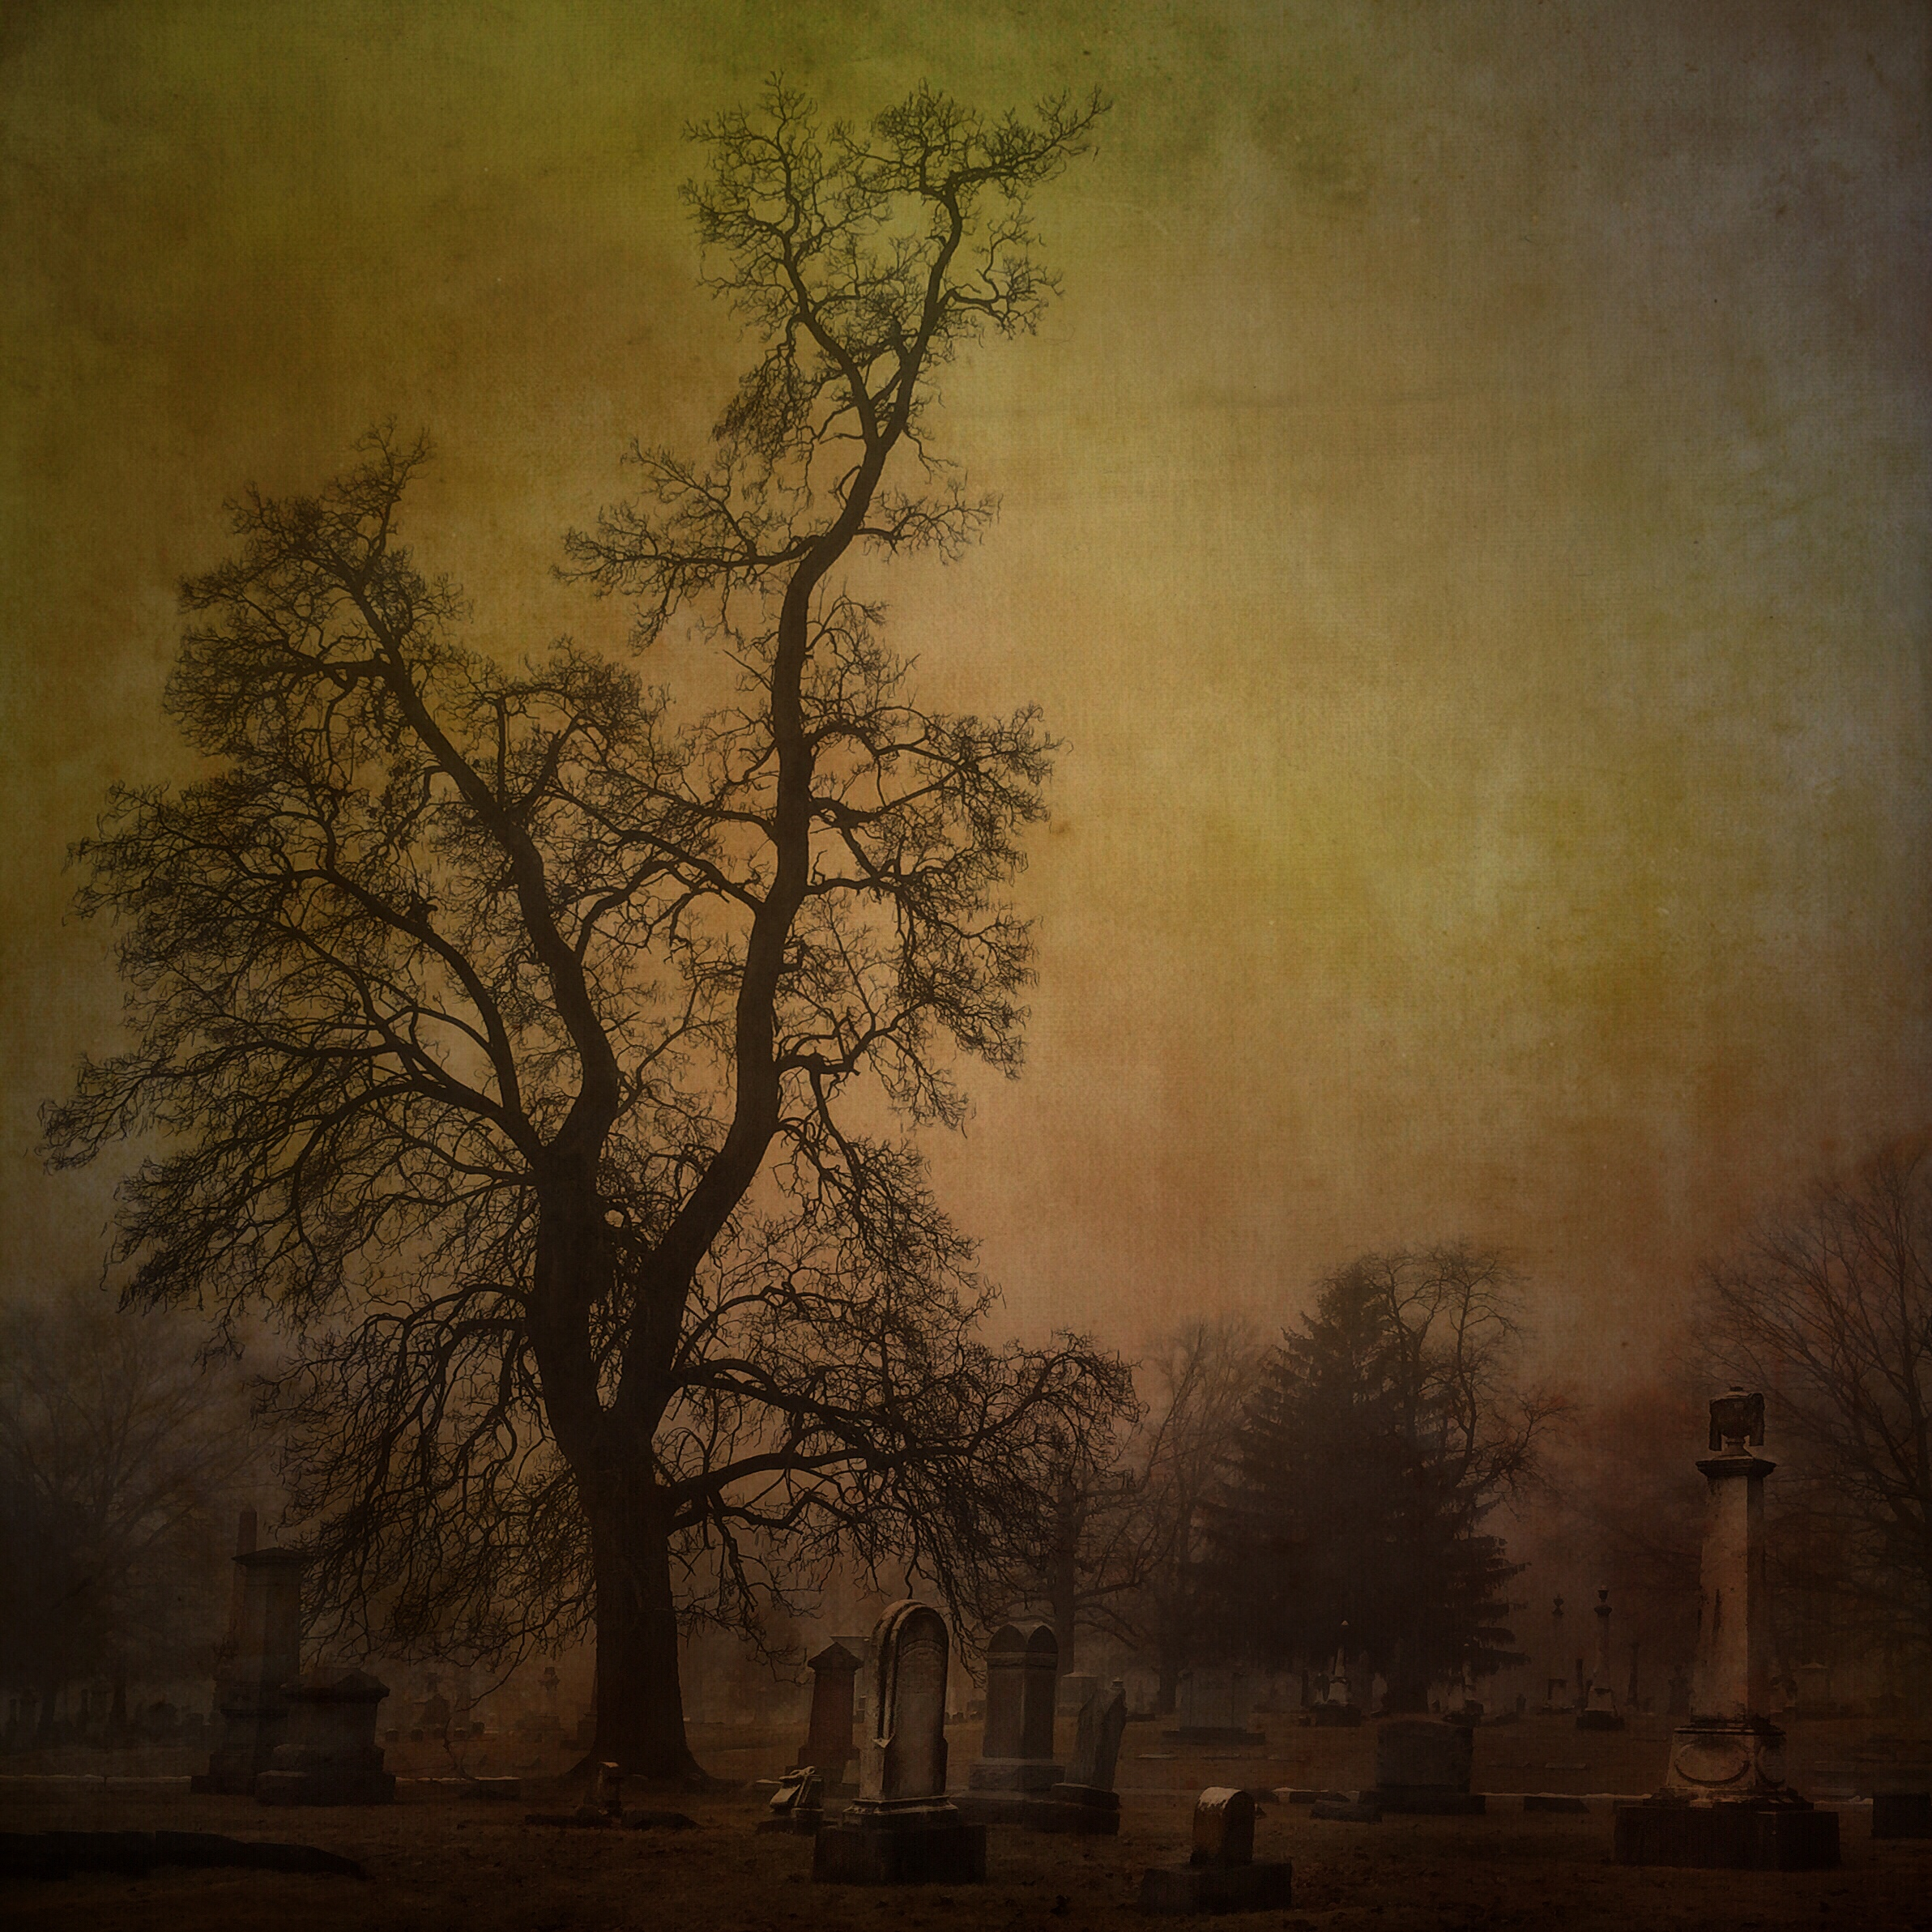 Sentinel, Crown Hill Cemetery  [Photo Credit: Rad A. Drew]